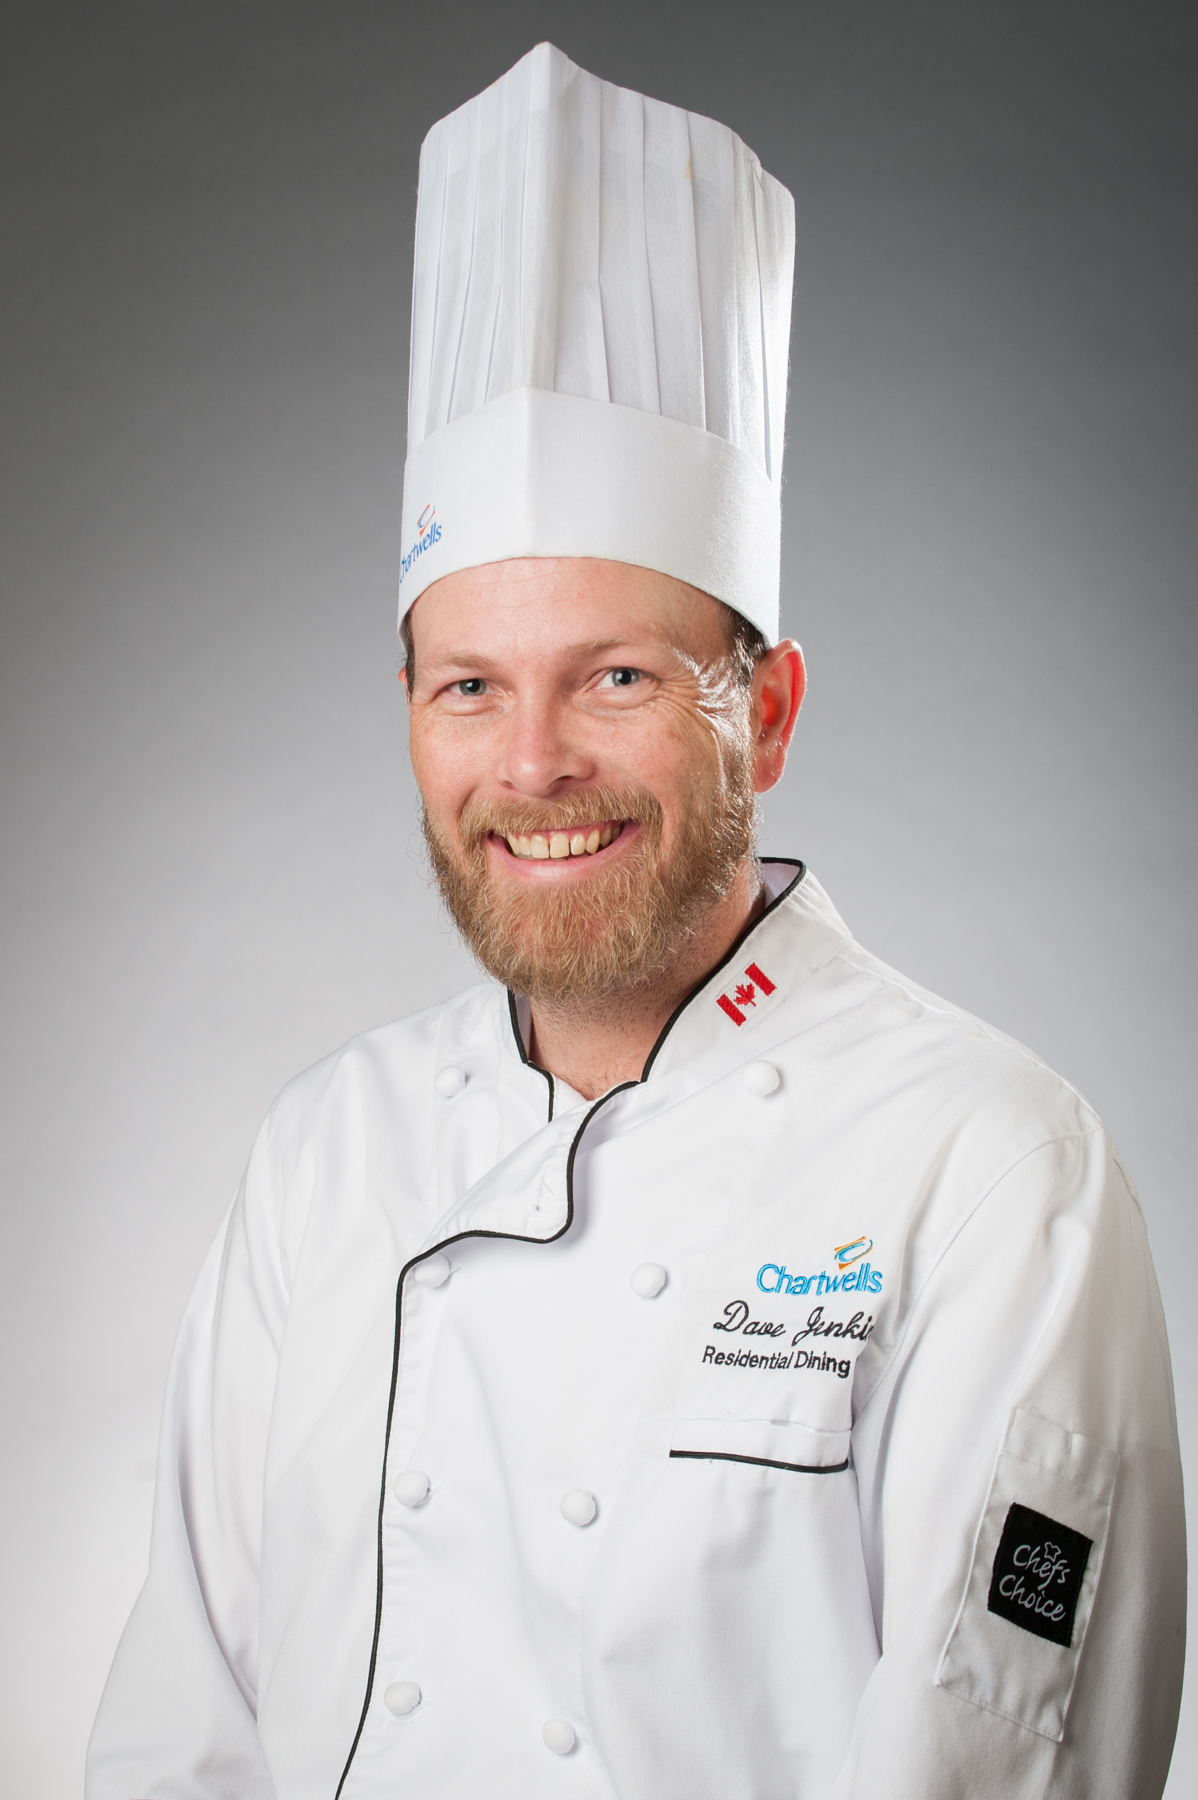 David Jenkins - Executive Sous Chef